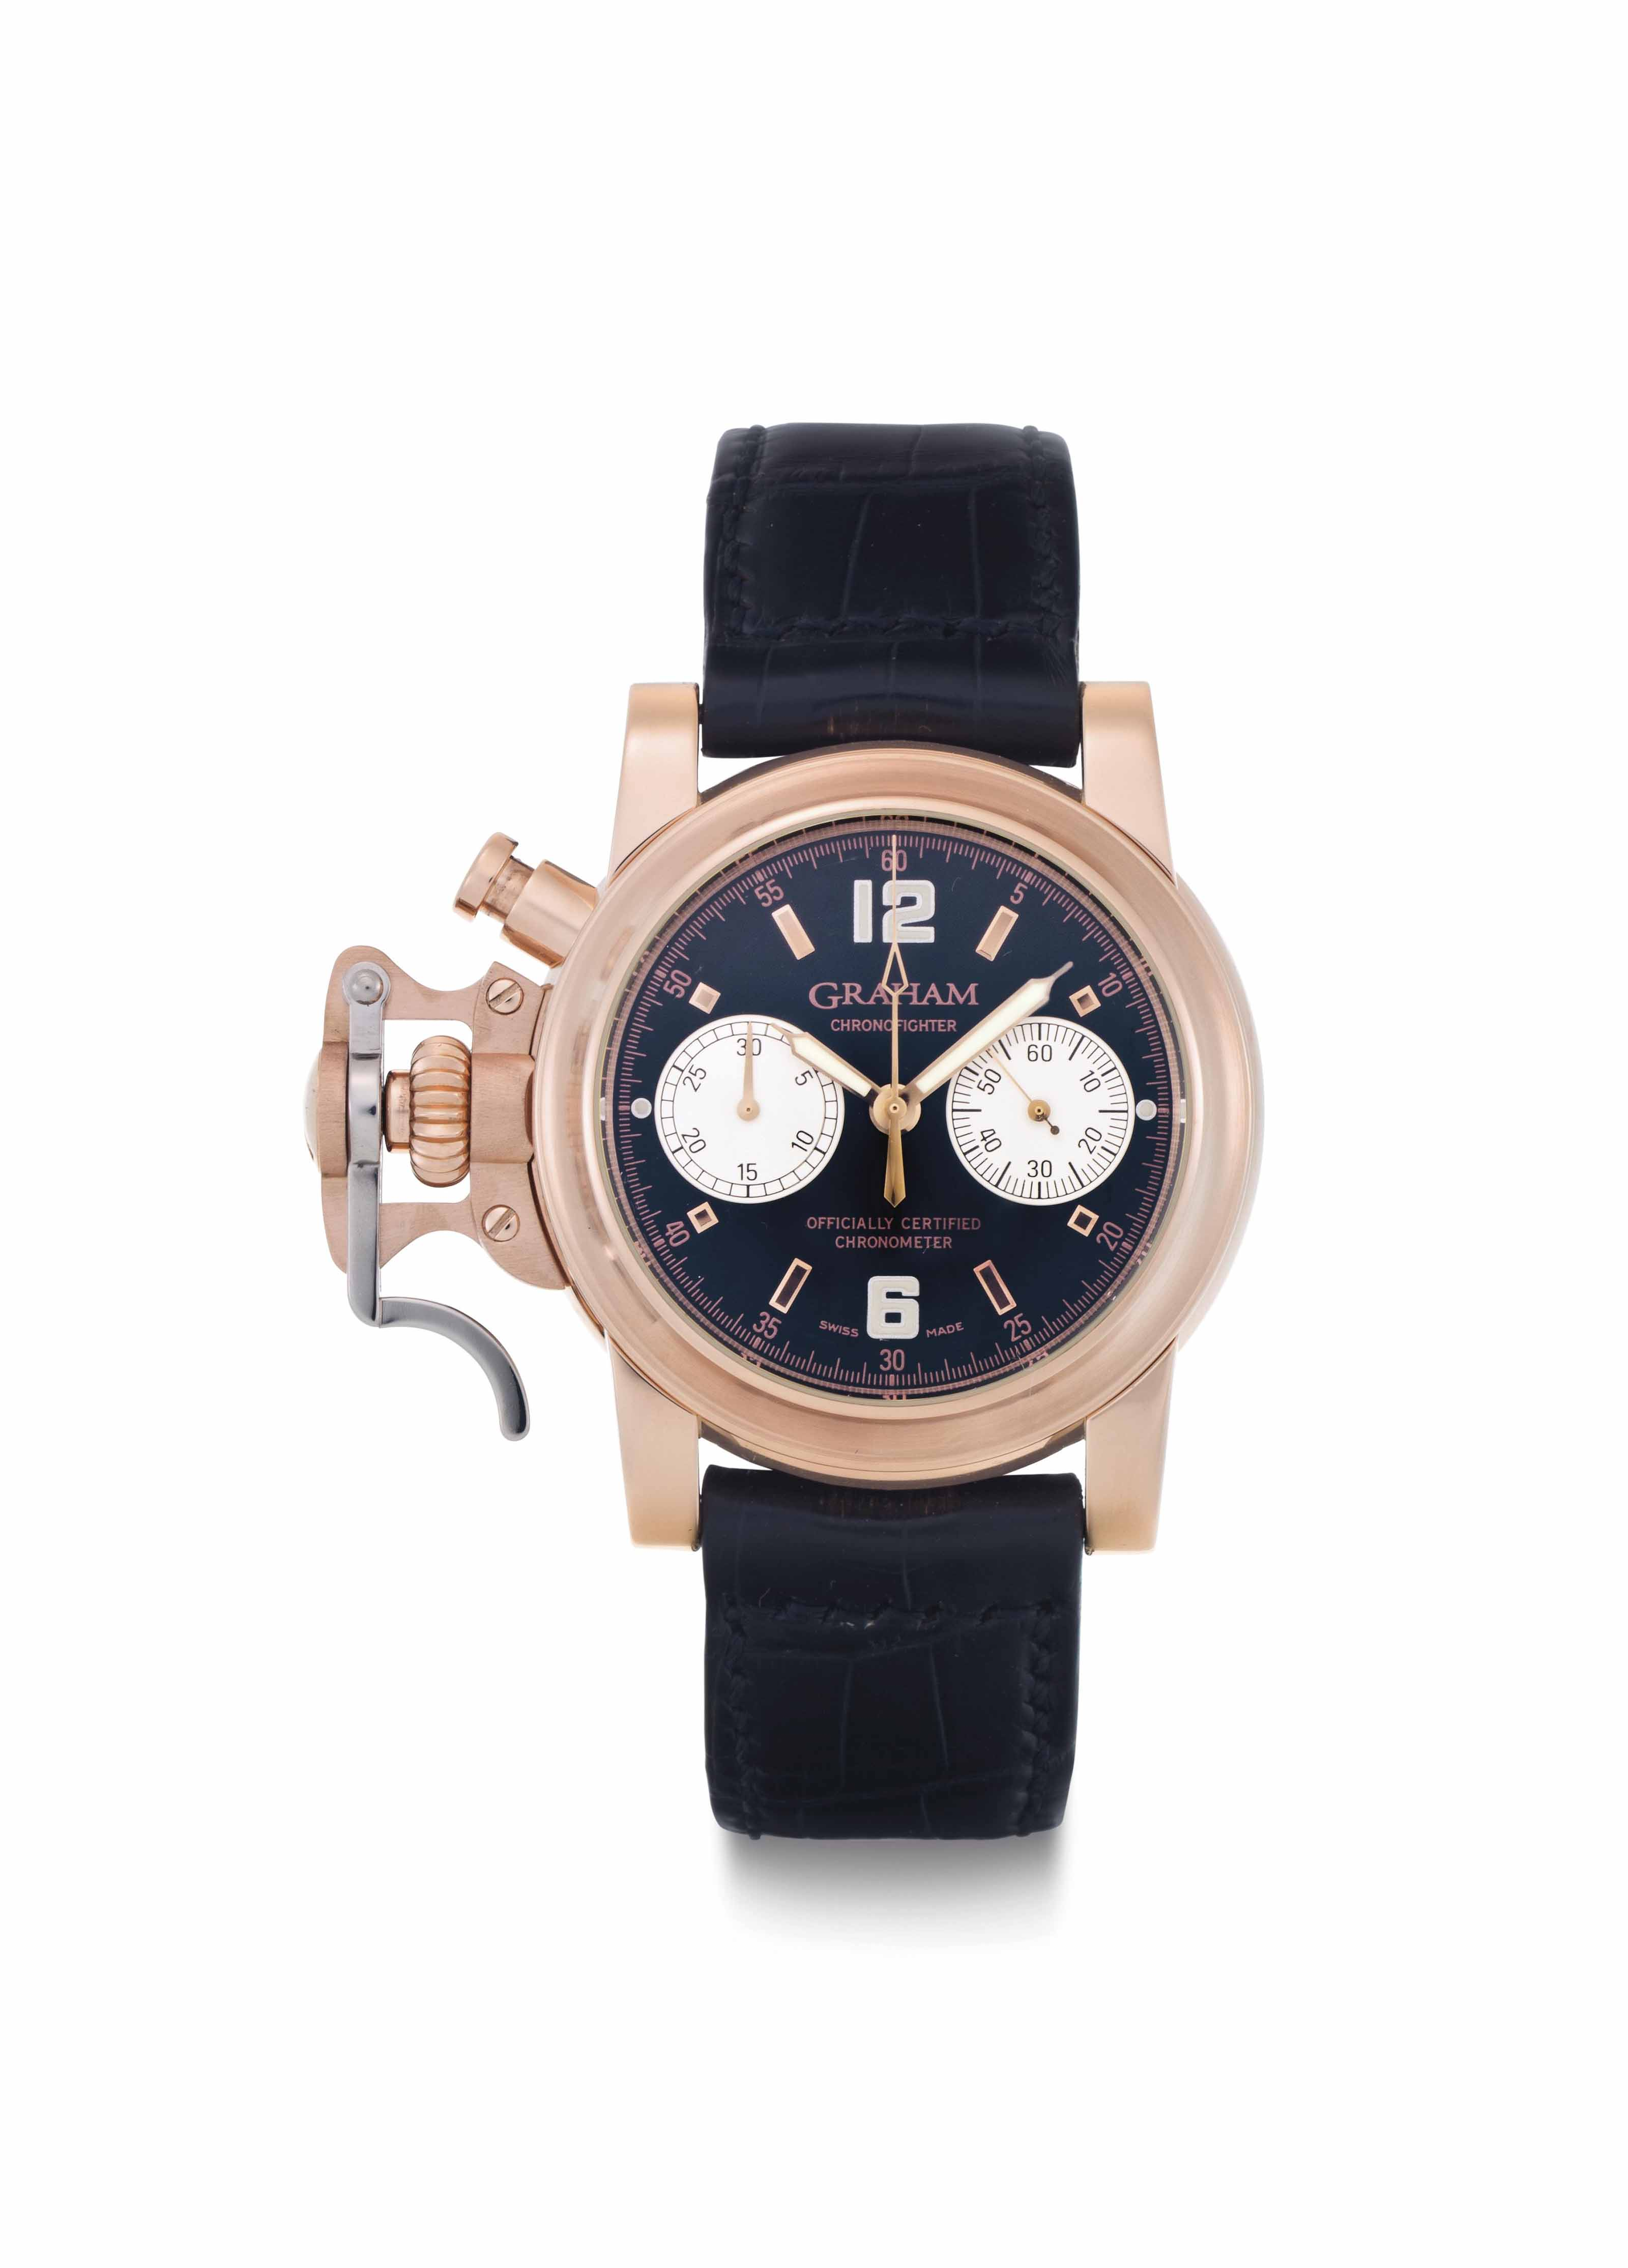 Graham. A Large 18k Pink Gold Automatic Left-Handed Chronograph Wristwatch